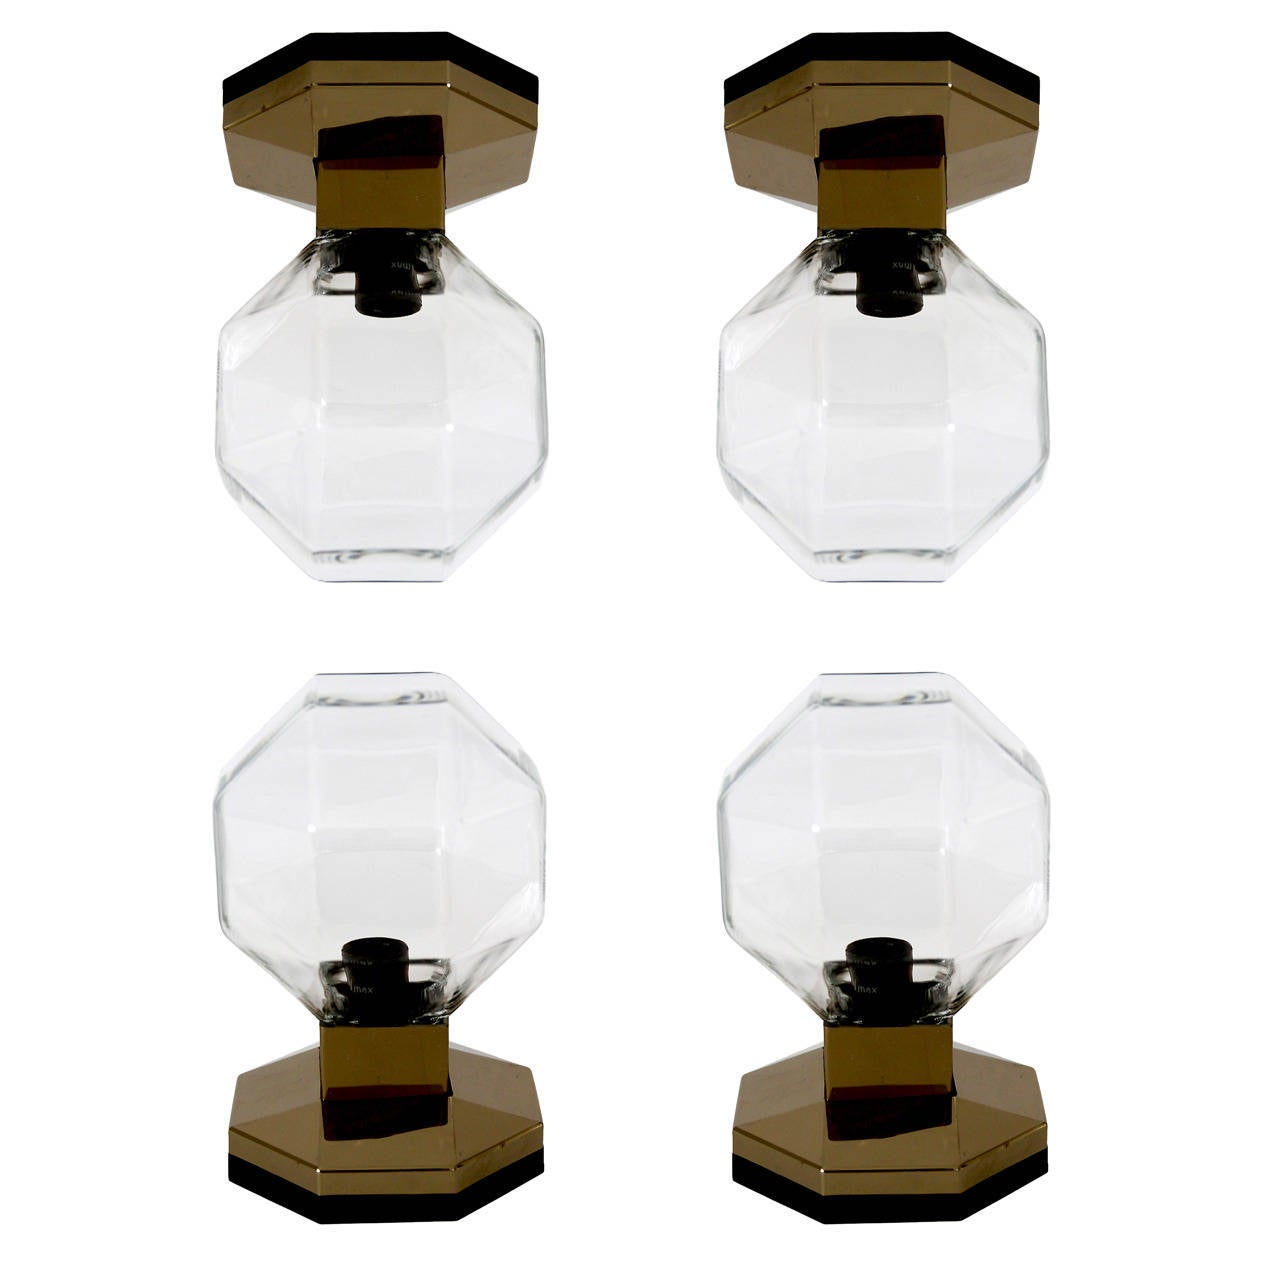 Ceiling Lights Germany : Four table wall or ceiling lights by motoko ishii for